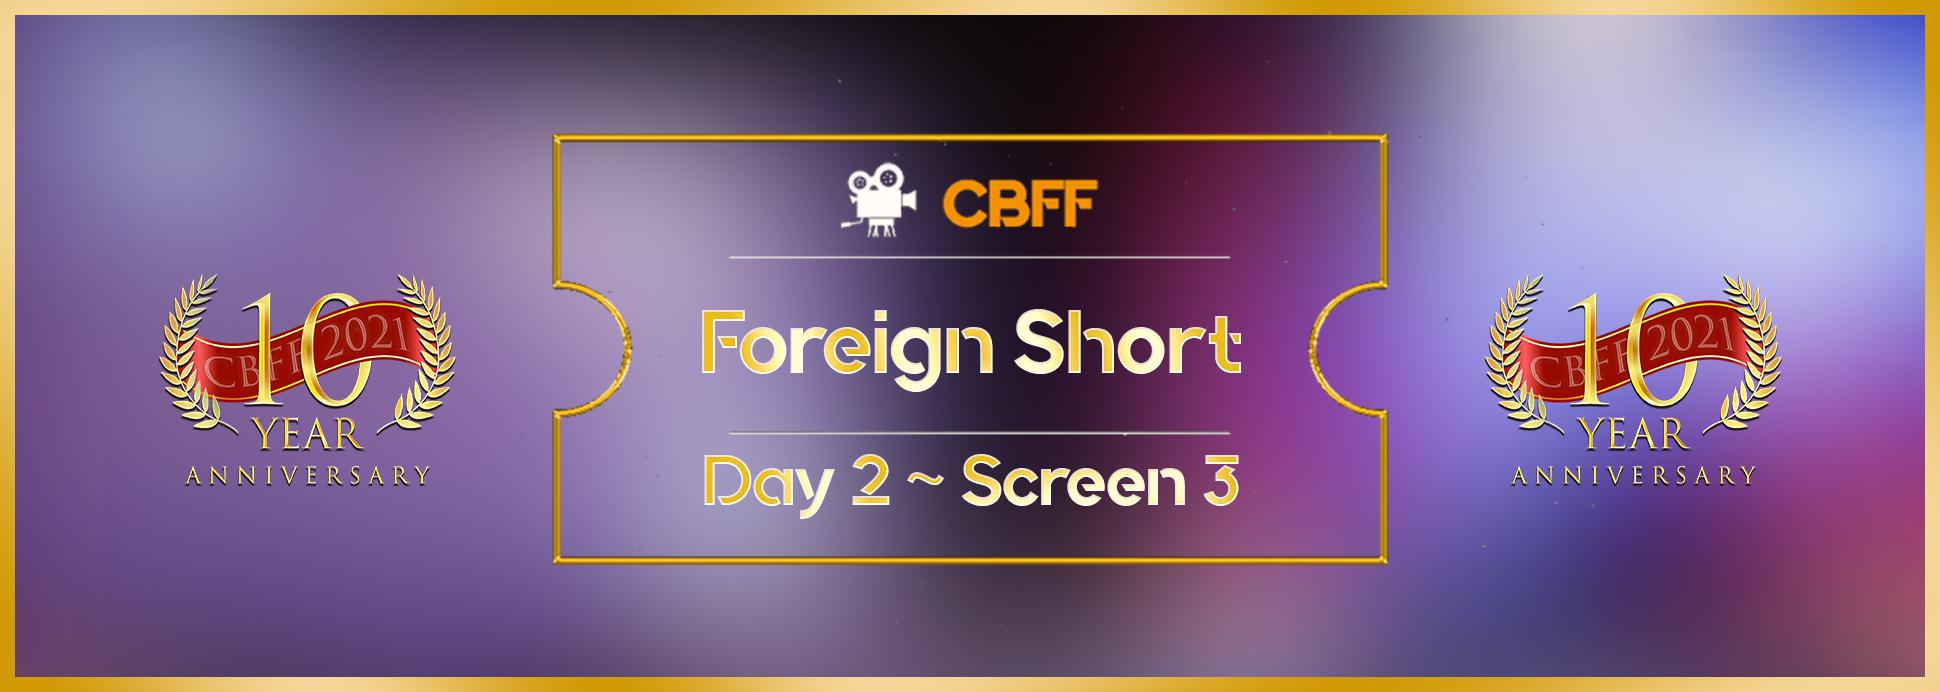 Day 2, Screen 3: Foreign Shorts 2